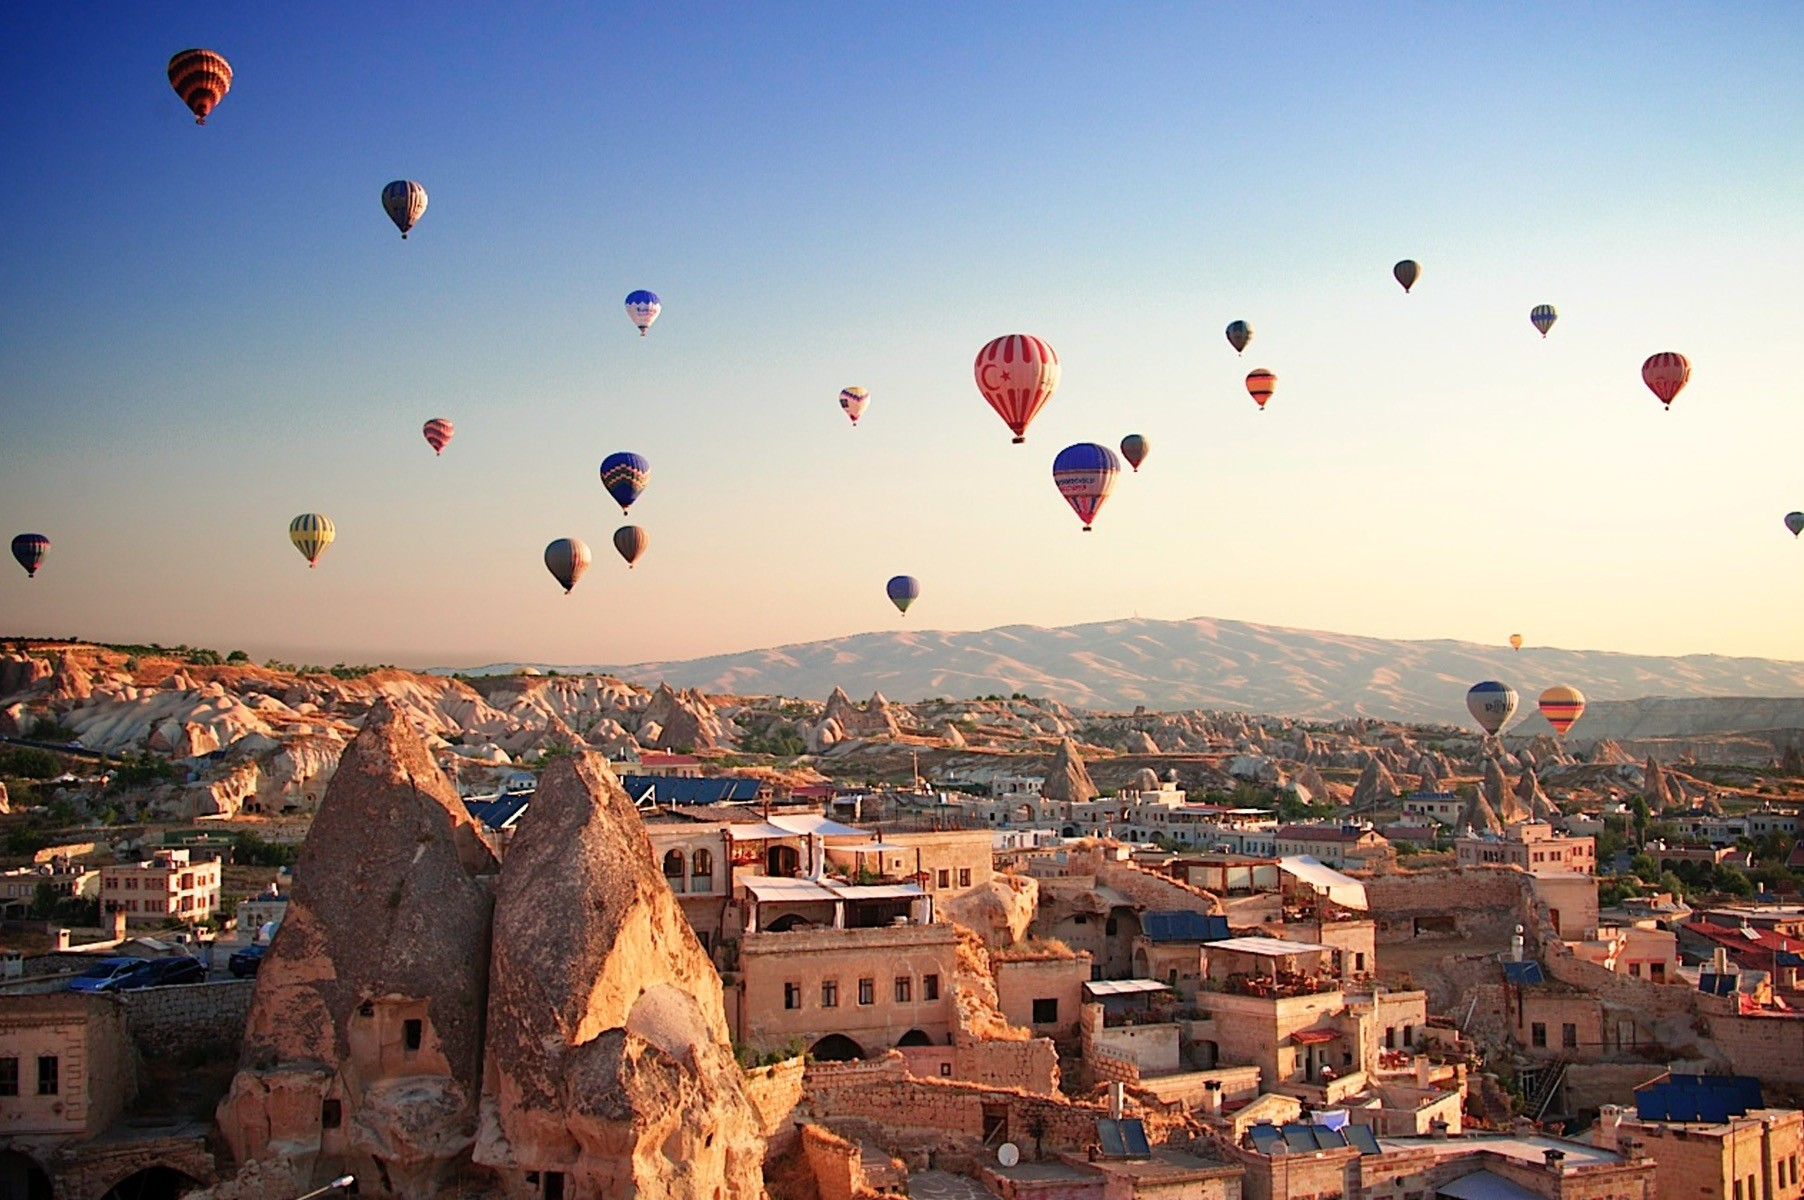 Hot balloon tours are the signature of Cappadocia as visitors observe mesmerizing sunrises and sunsets over the landscape.